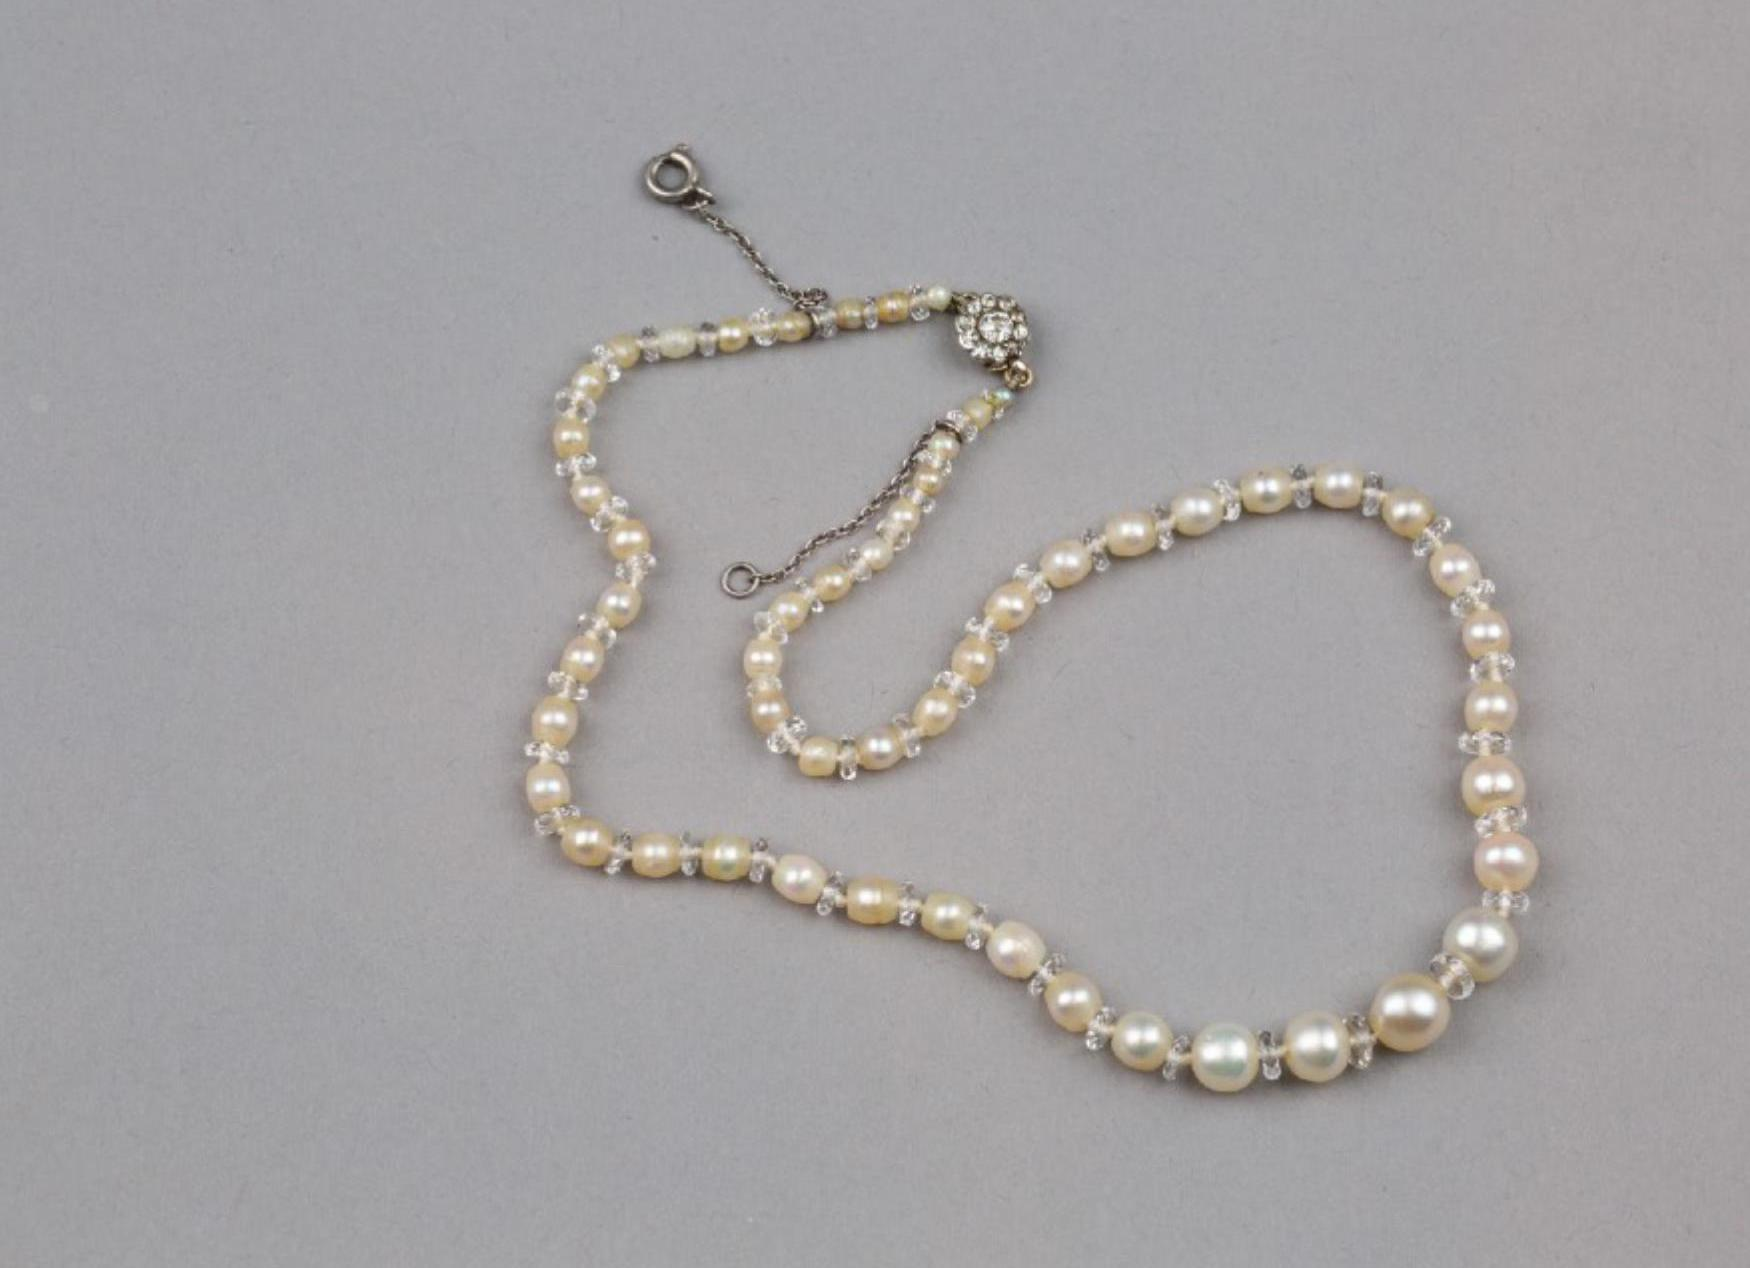 Lot 60 - A Wild Seawater Pearls Necklace